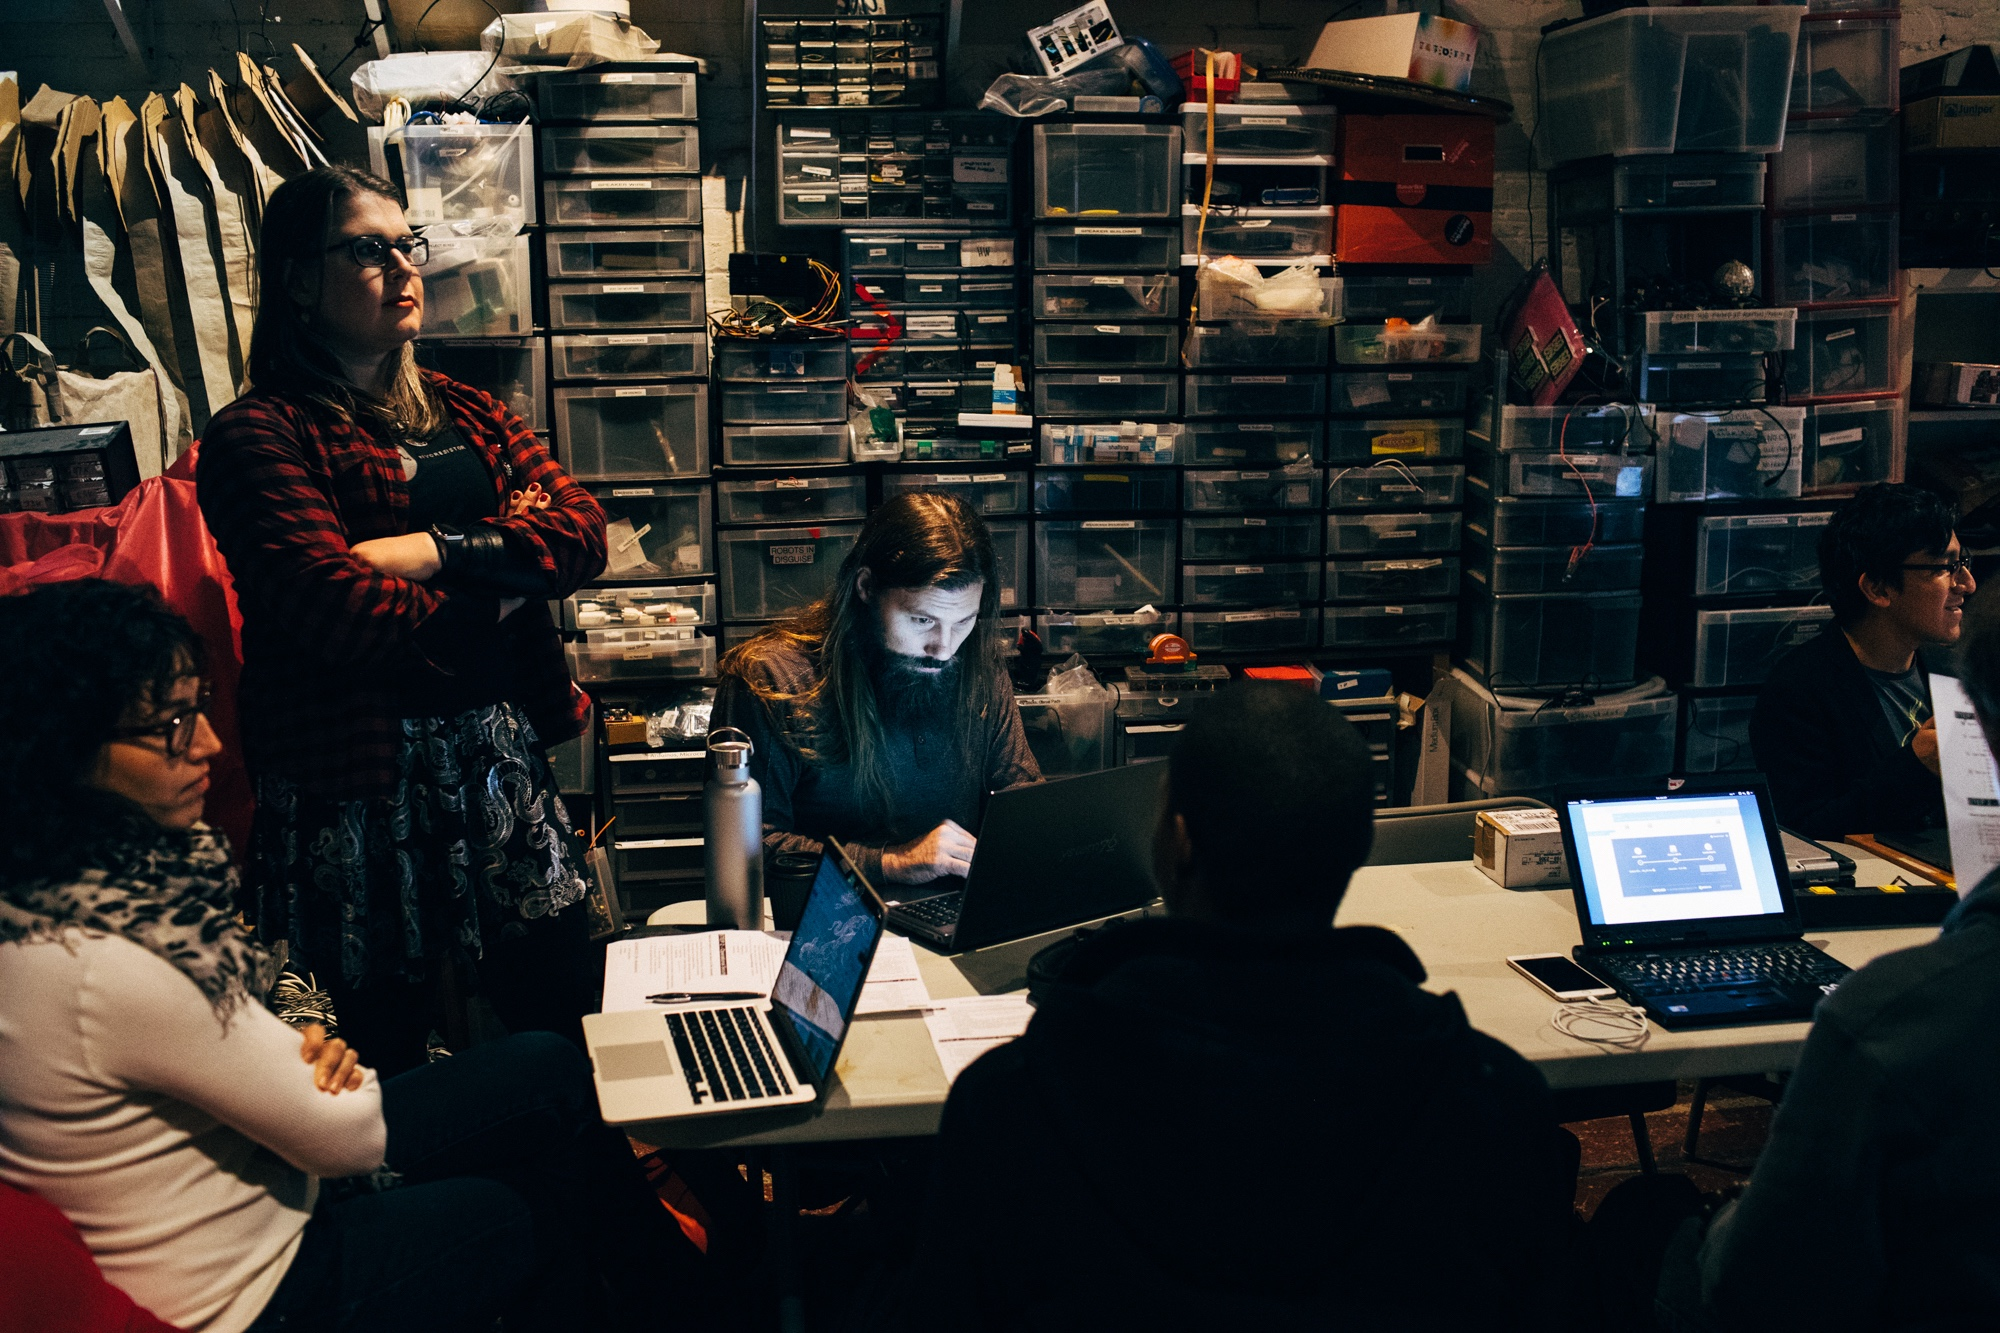 Hacker enthusiasts from all walks of life - researchers, journalists, everyday citizens gather at NYC Resistor, the home of New York's main CryptoParty chapter, to learn basic encryption skills that can be easily passed on and picked up by anyone.